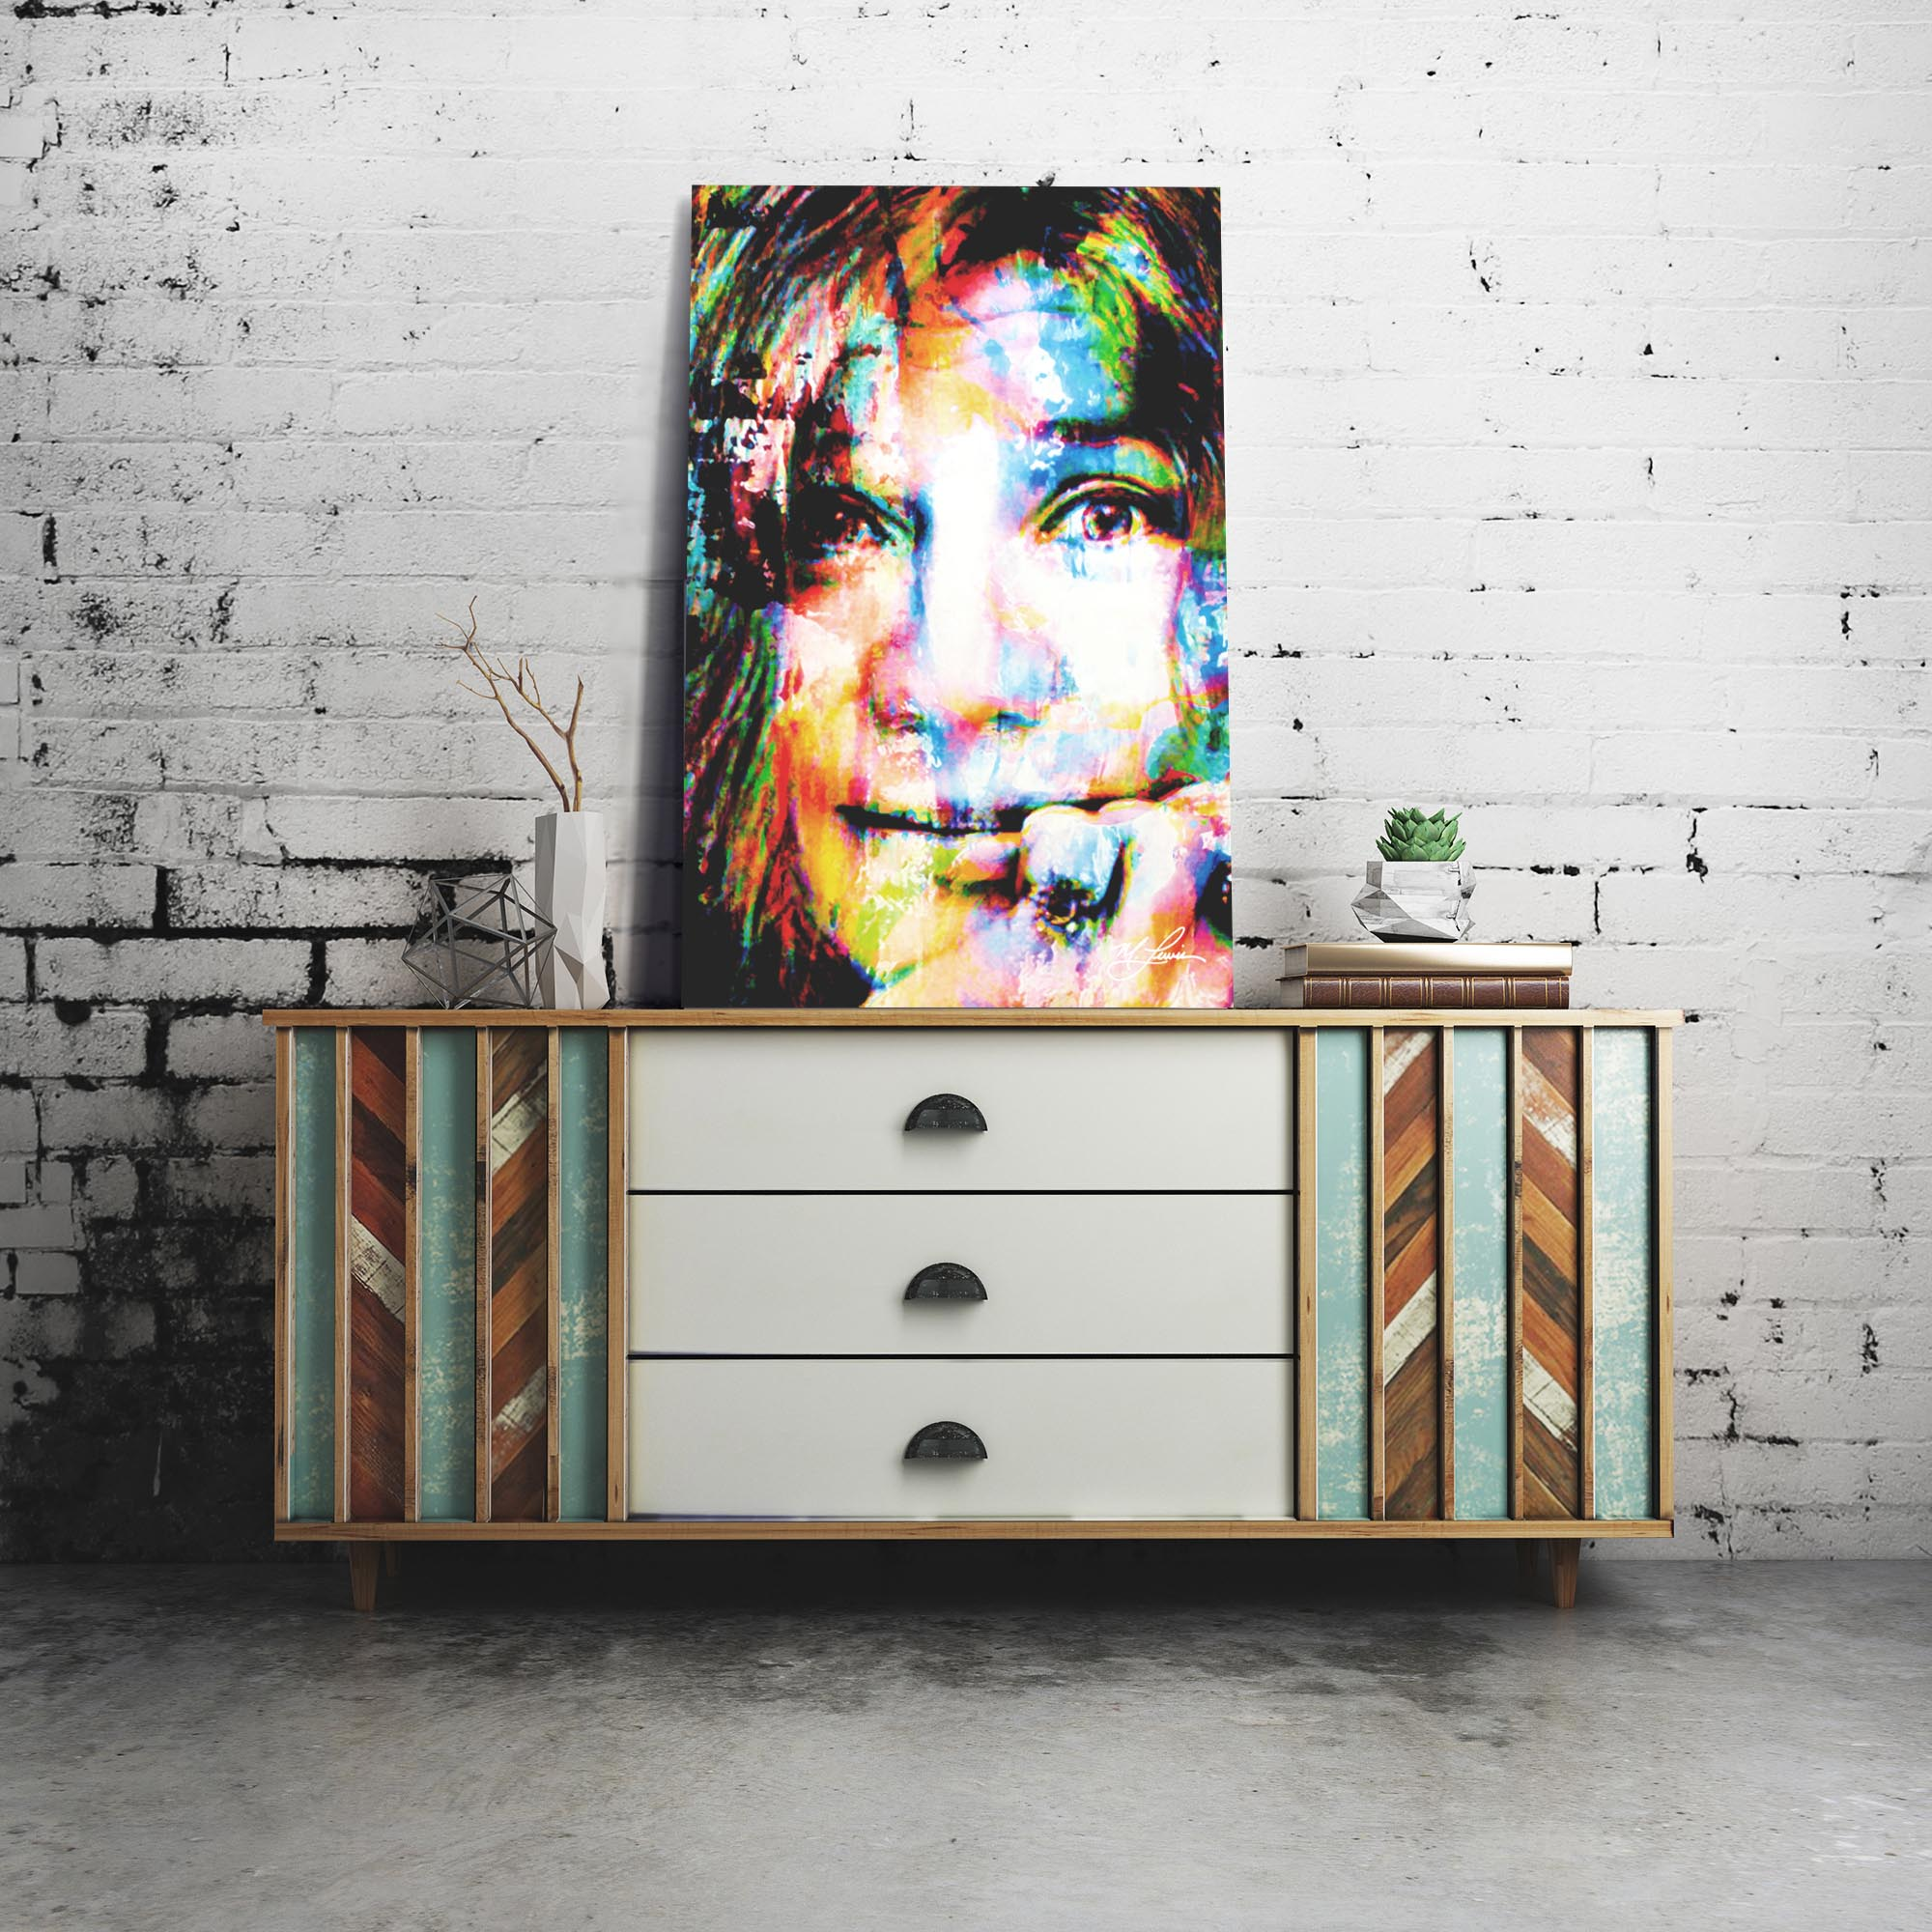 Janis Joplin Declaration of Soul by Mark Lewis - Celebrity Pop Art on Metal or Plexiglass - ML0038